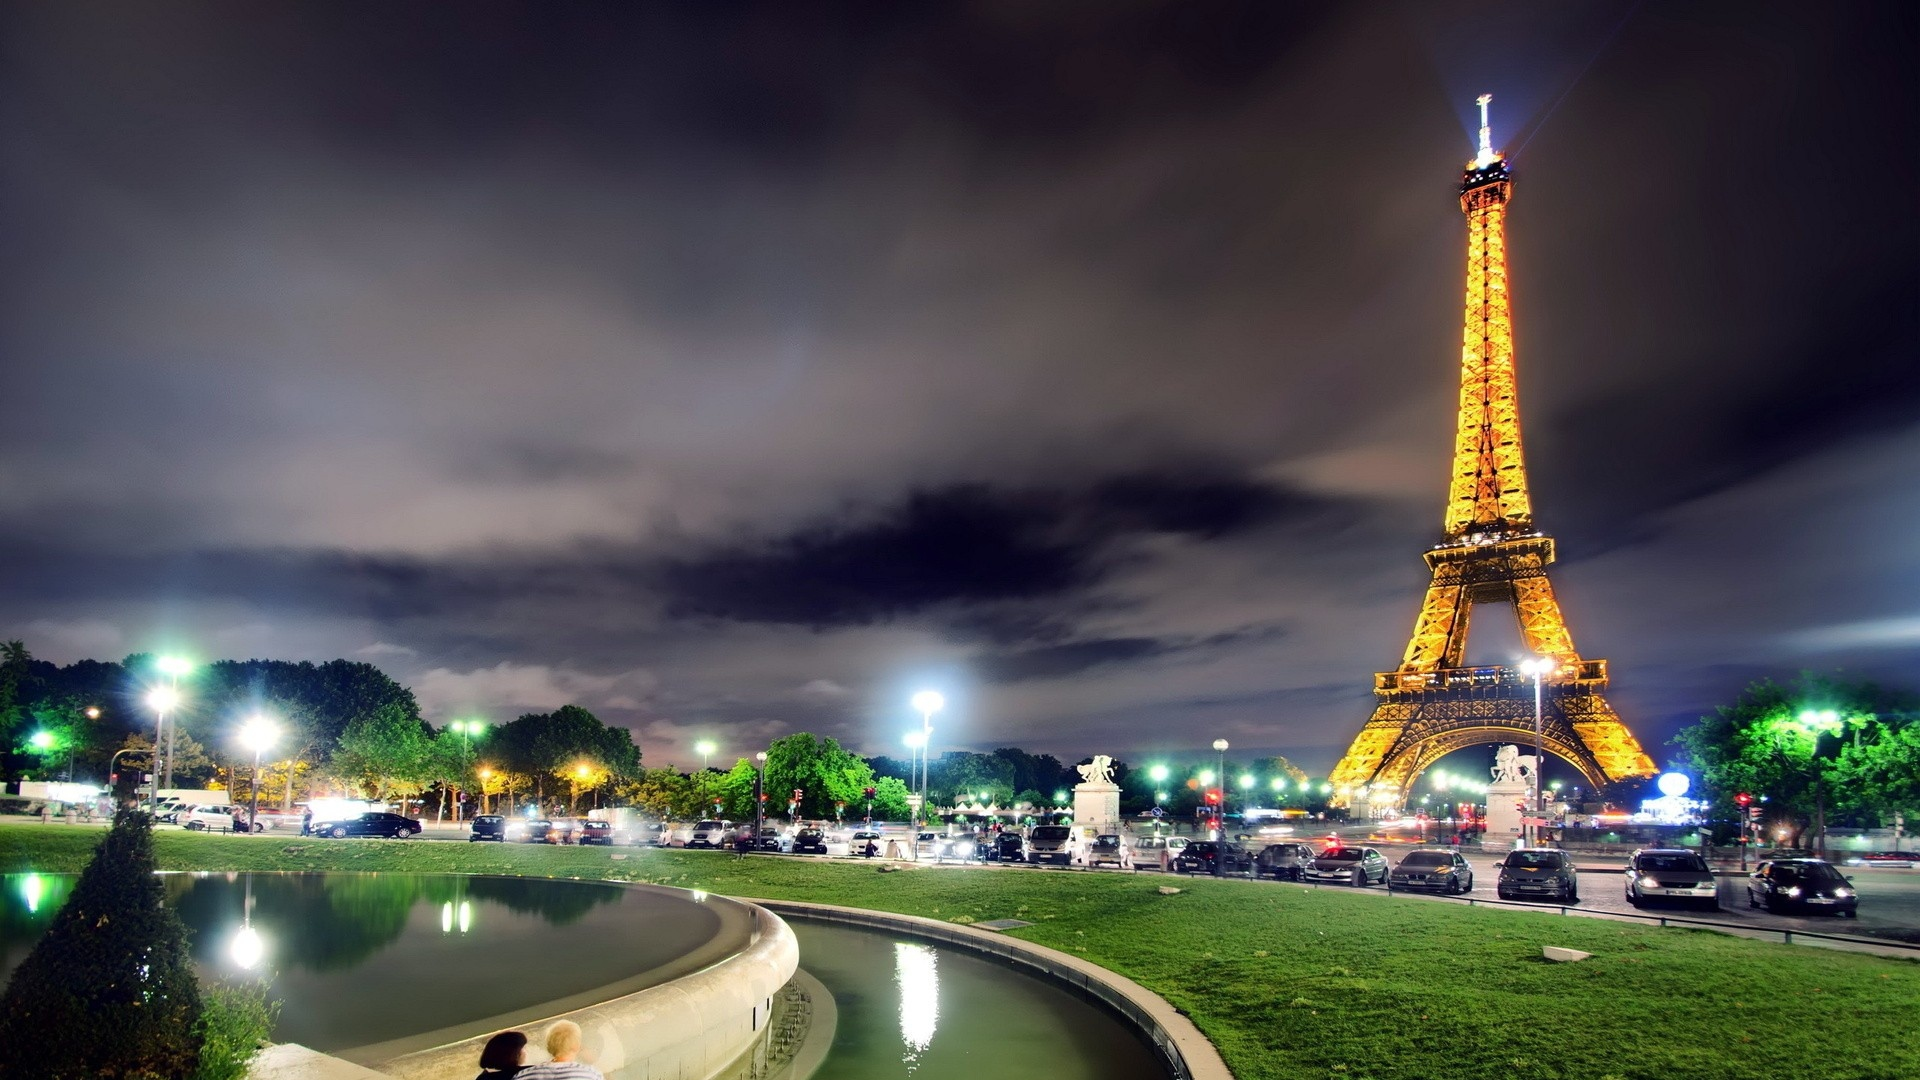 download wallpaper 1920x1080 france, paris, eiffel tower, light